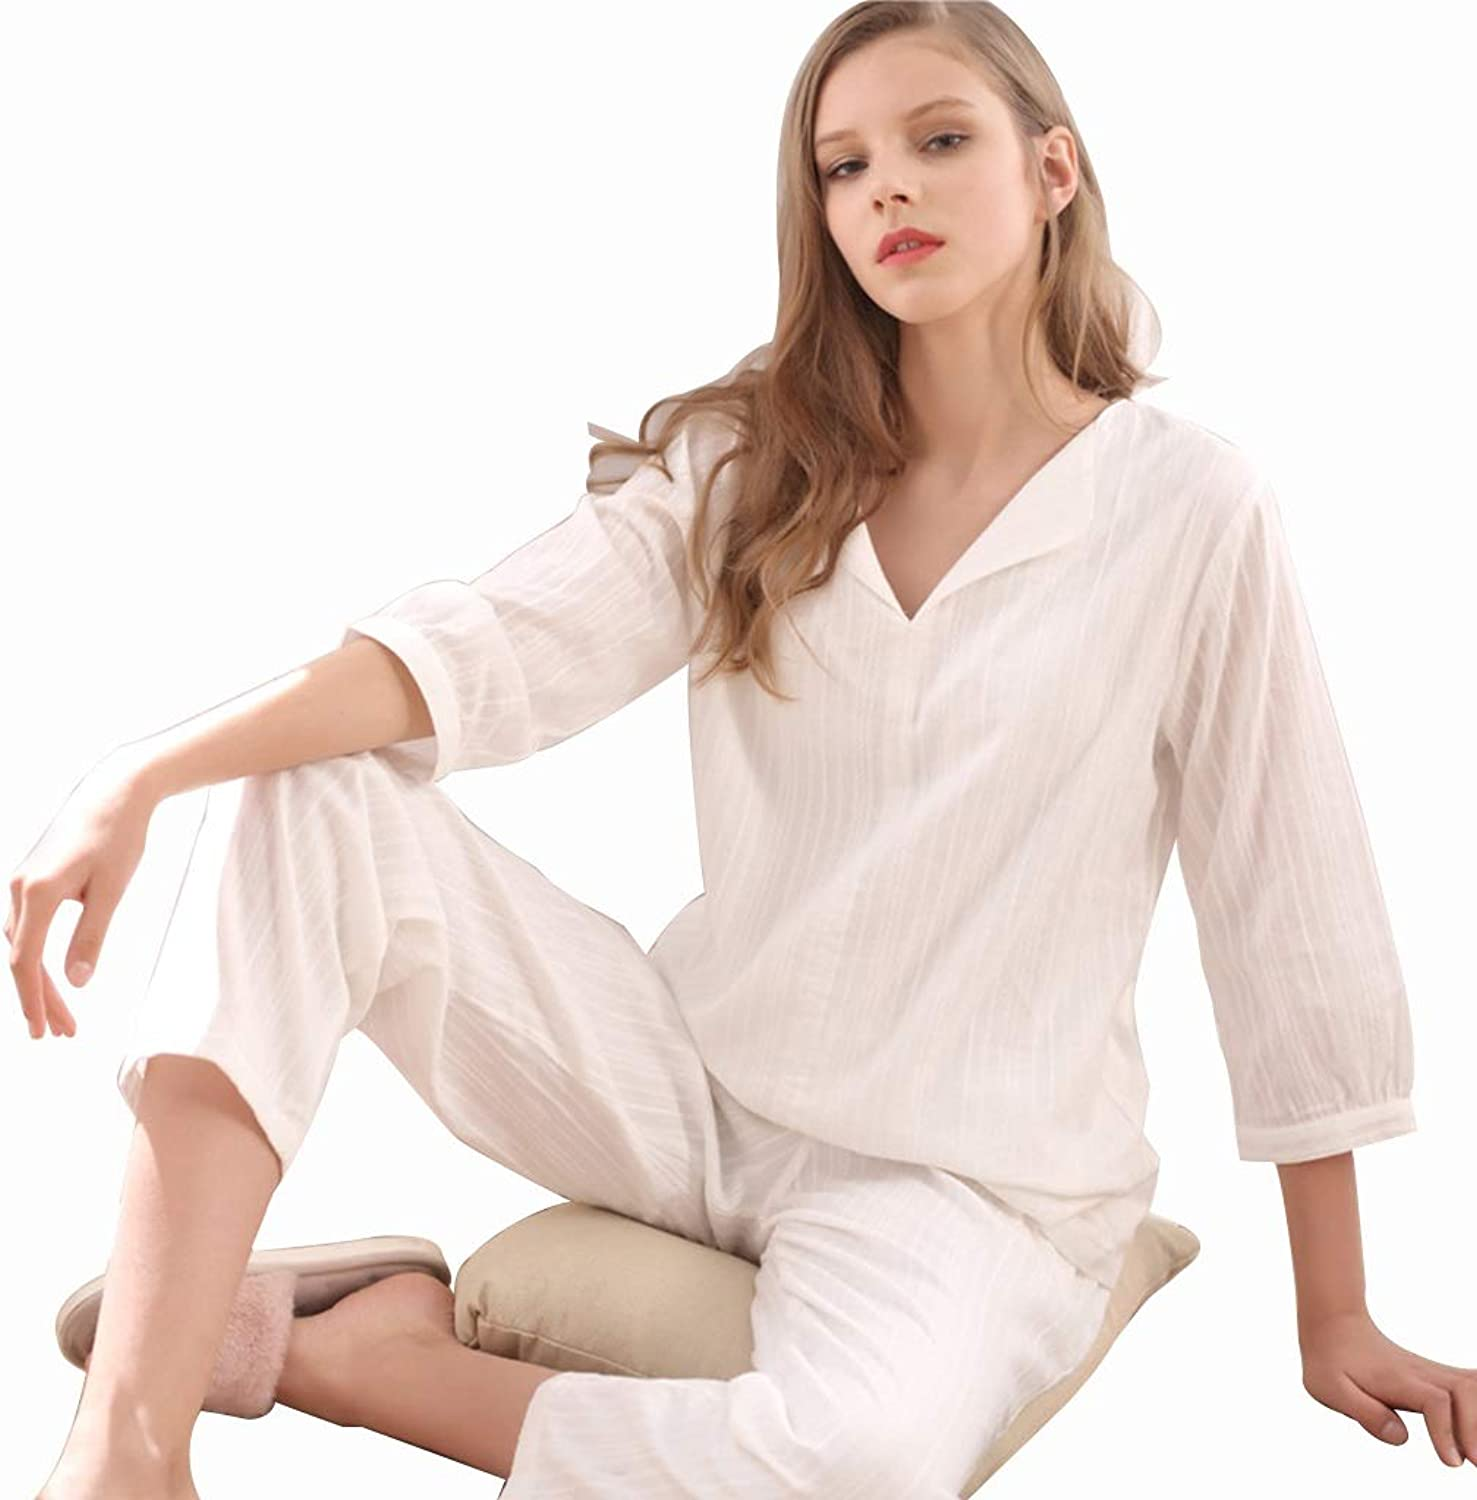 Pajamas Pure White Cotton NinePoint Sleeve Trousers Pajamas Women Summer Casual Home Service (color   White, Size   L)